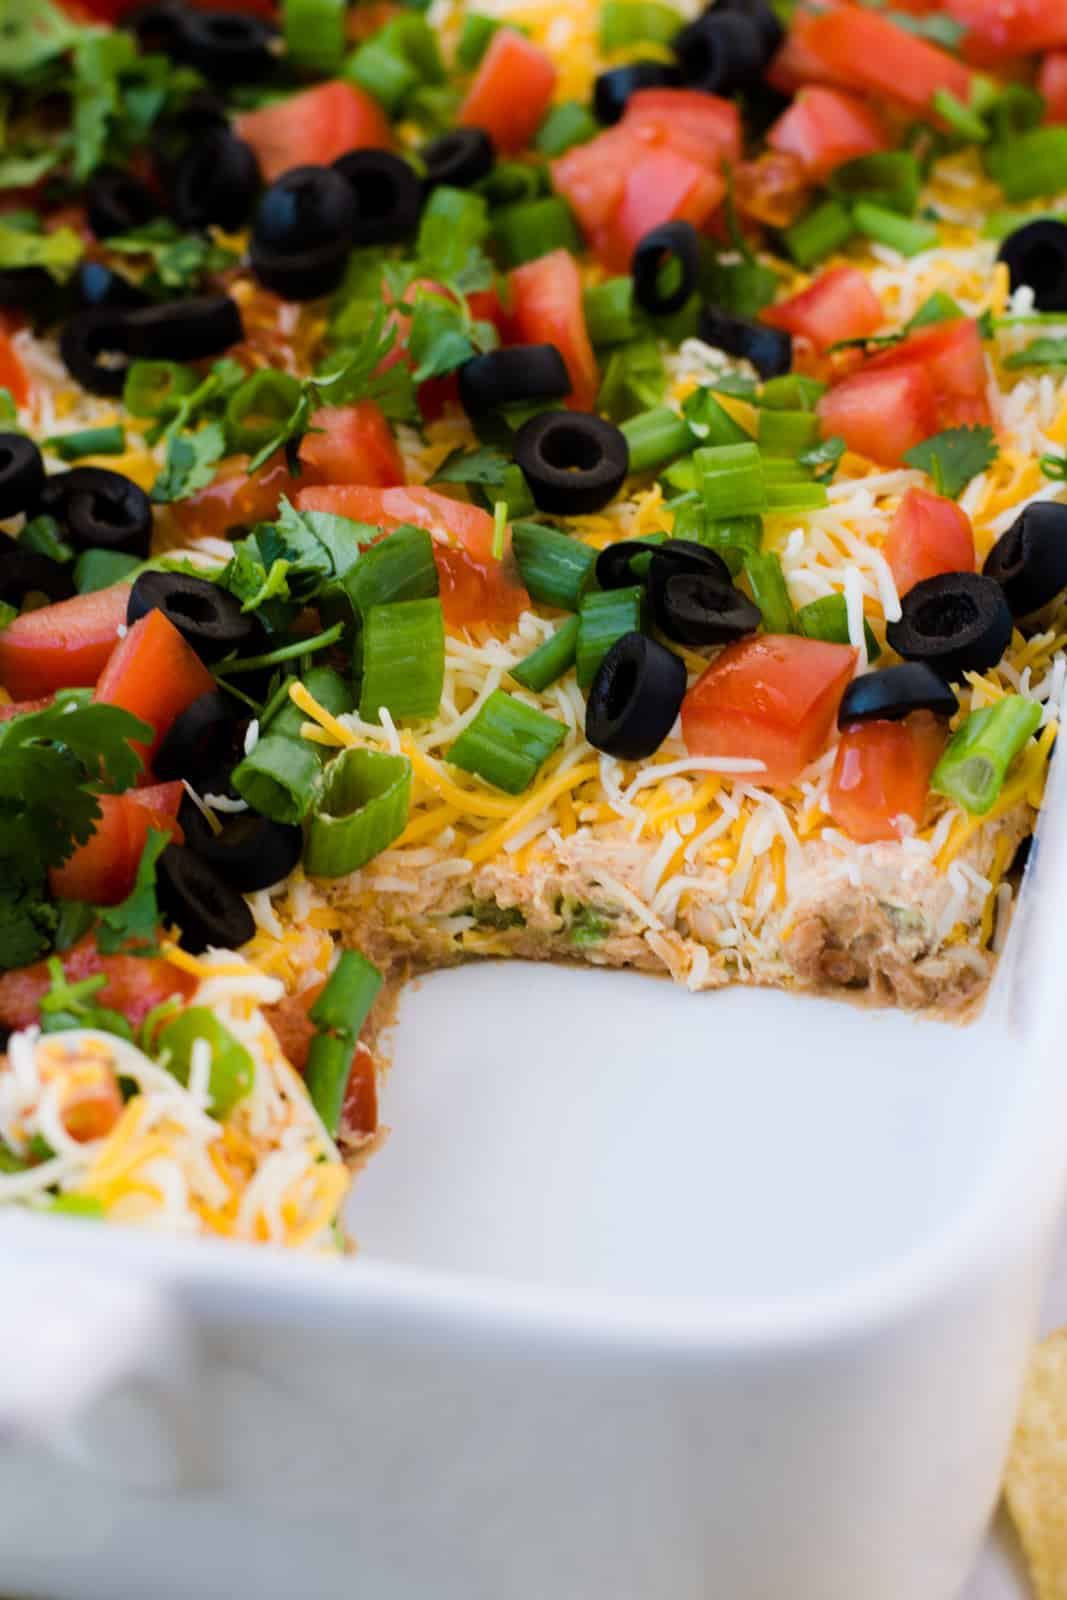 Square of 7 Layer Dip taken out of dish showing layers